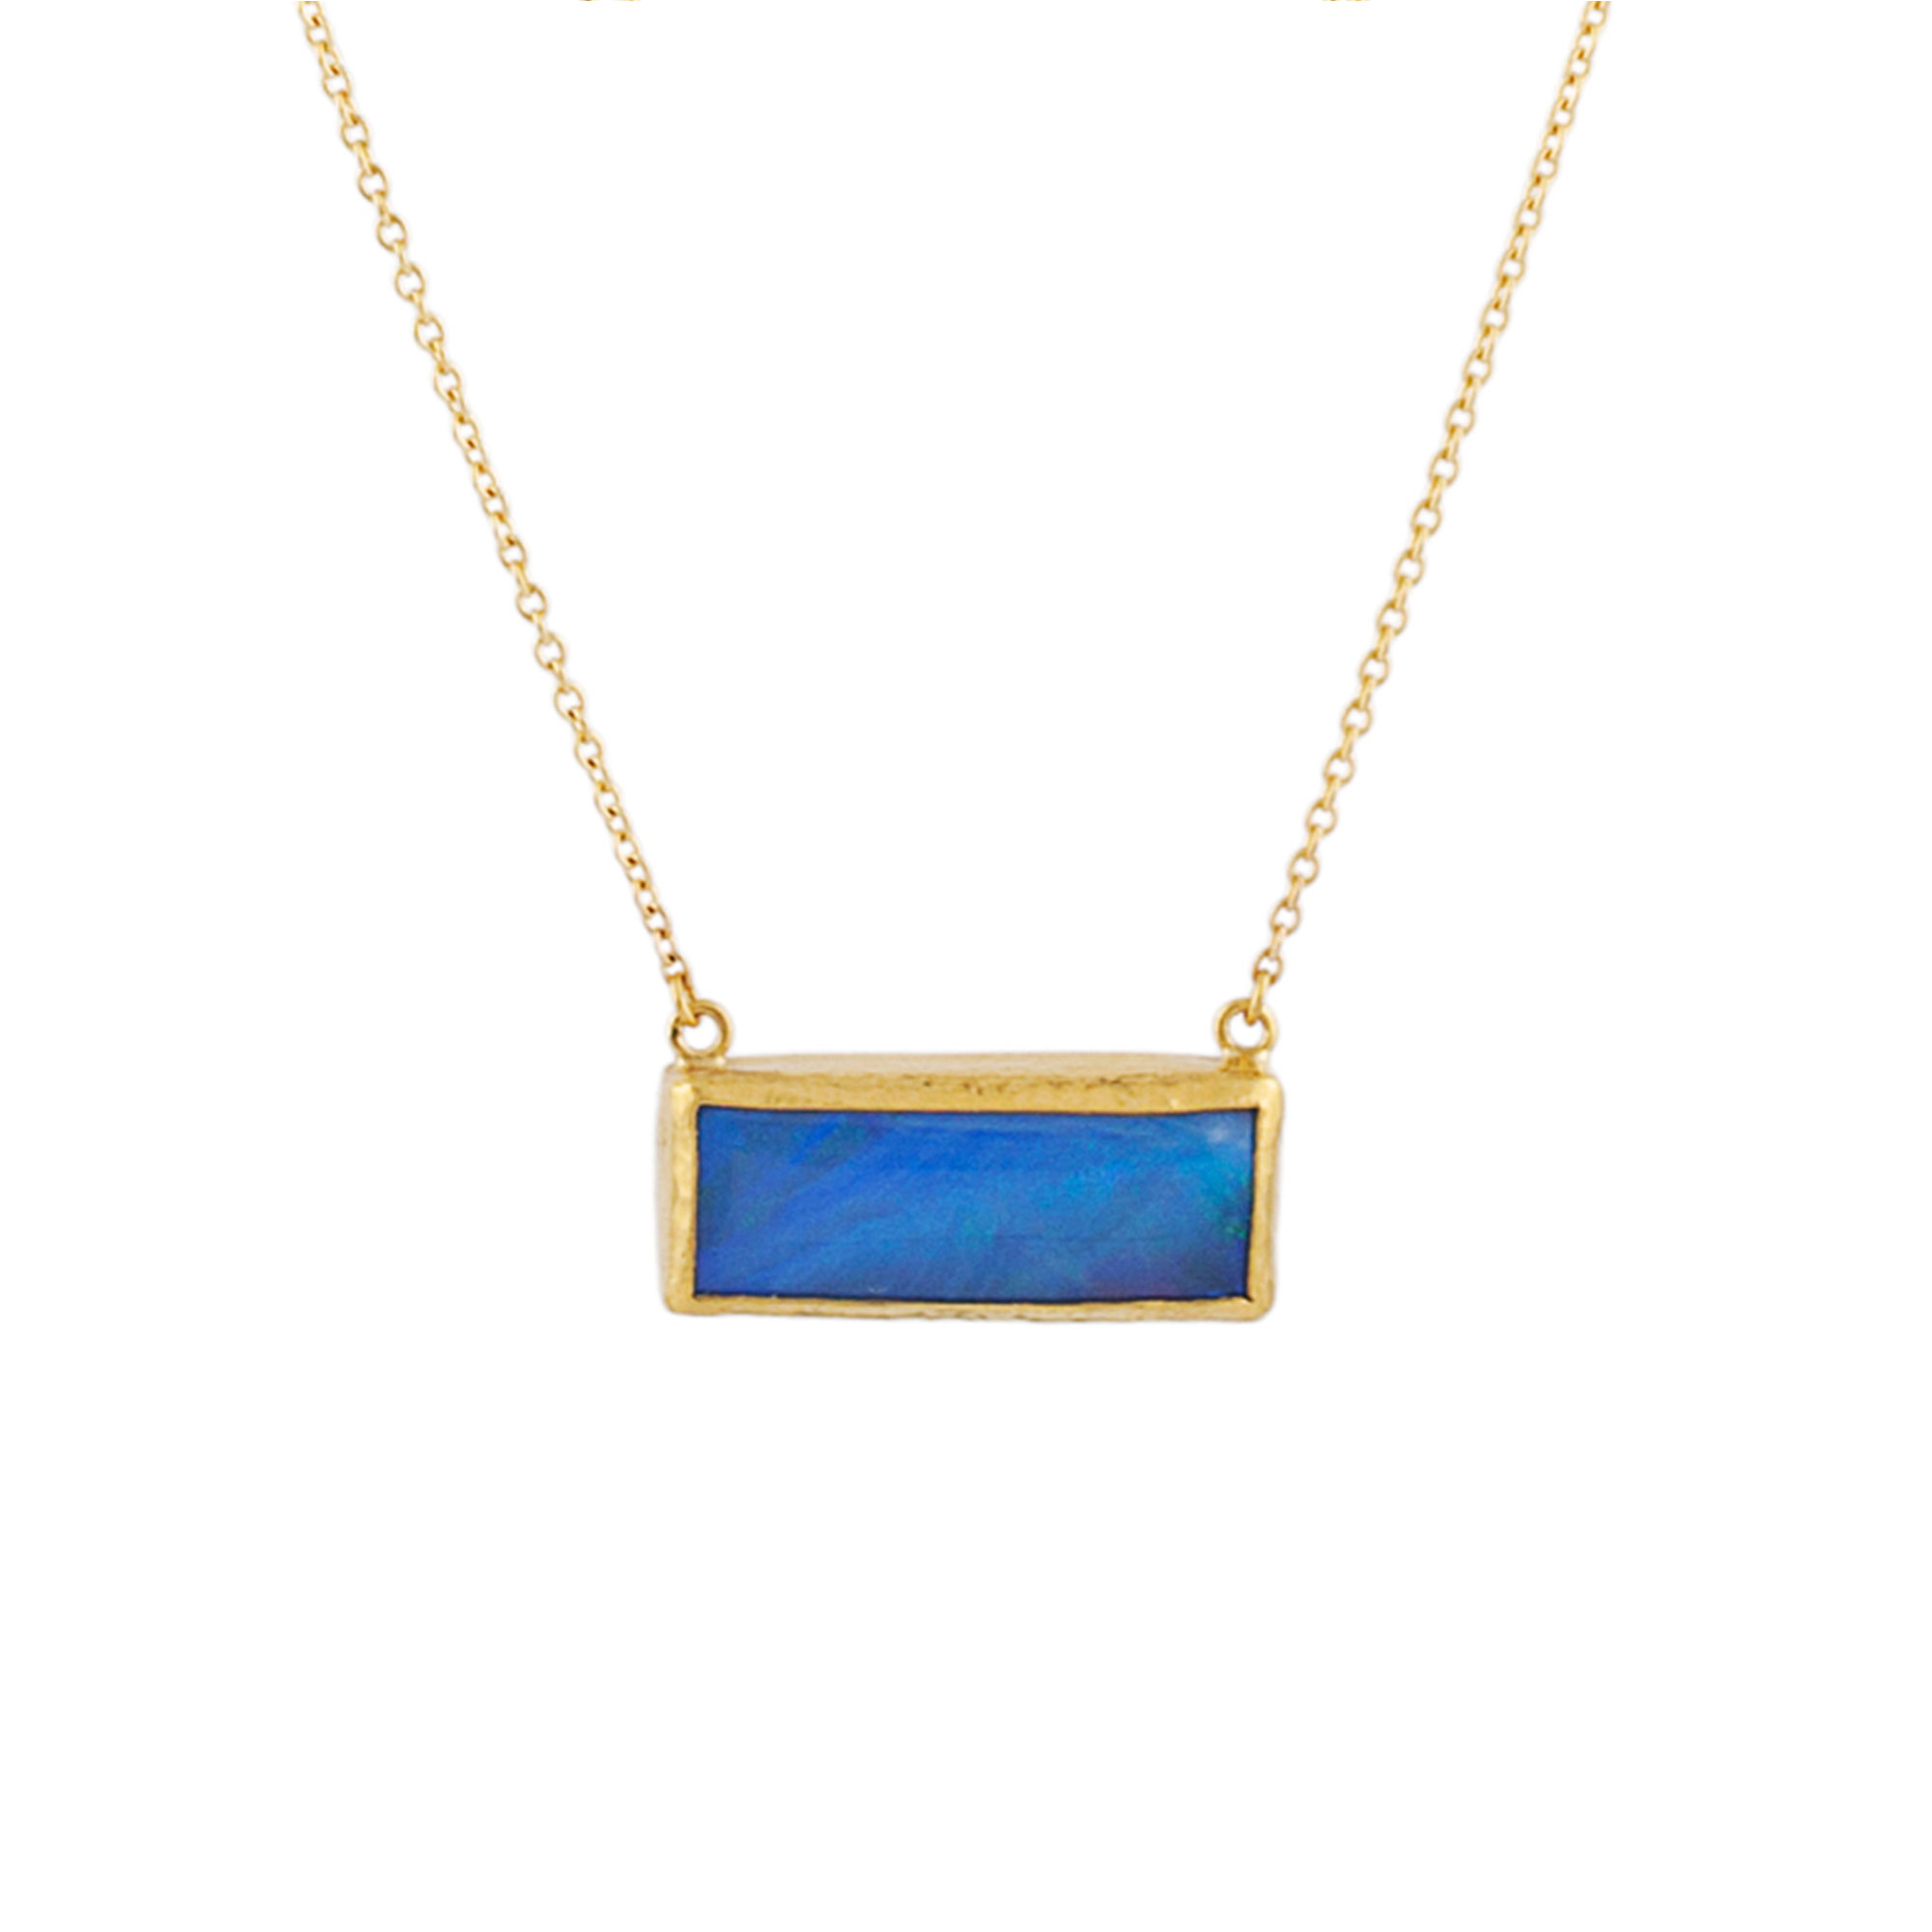 Gurhan 22-24K Yellow Gold 20x8mm Blue Opal Gold Necklace with Stones N-U21110-OP